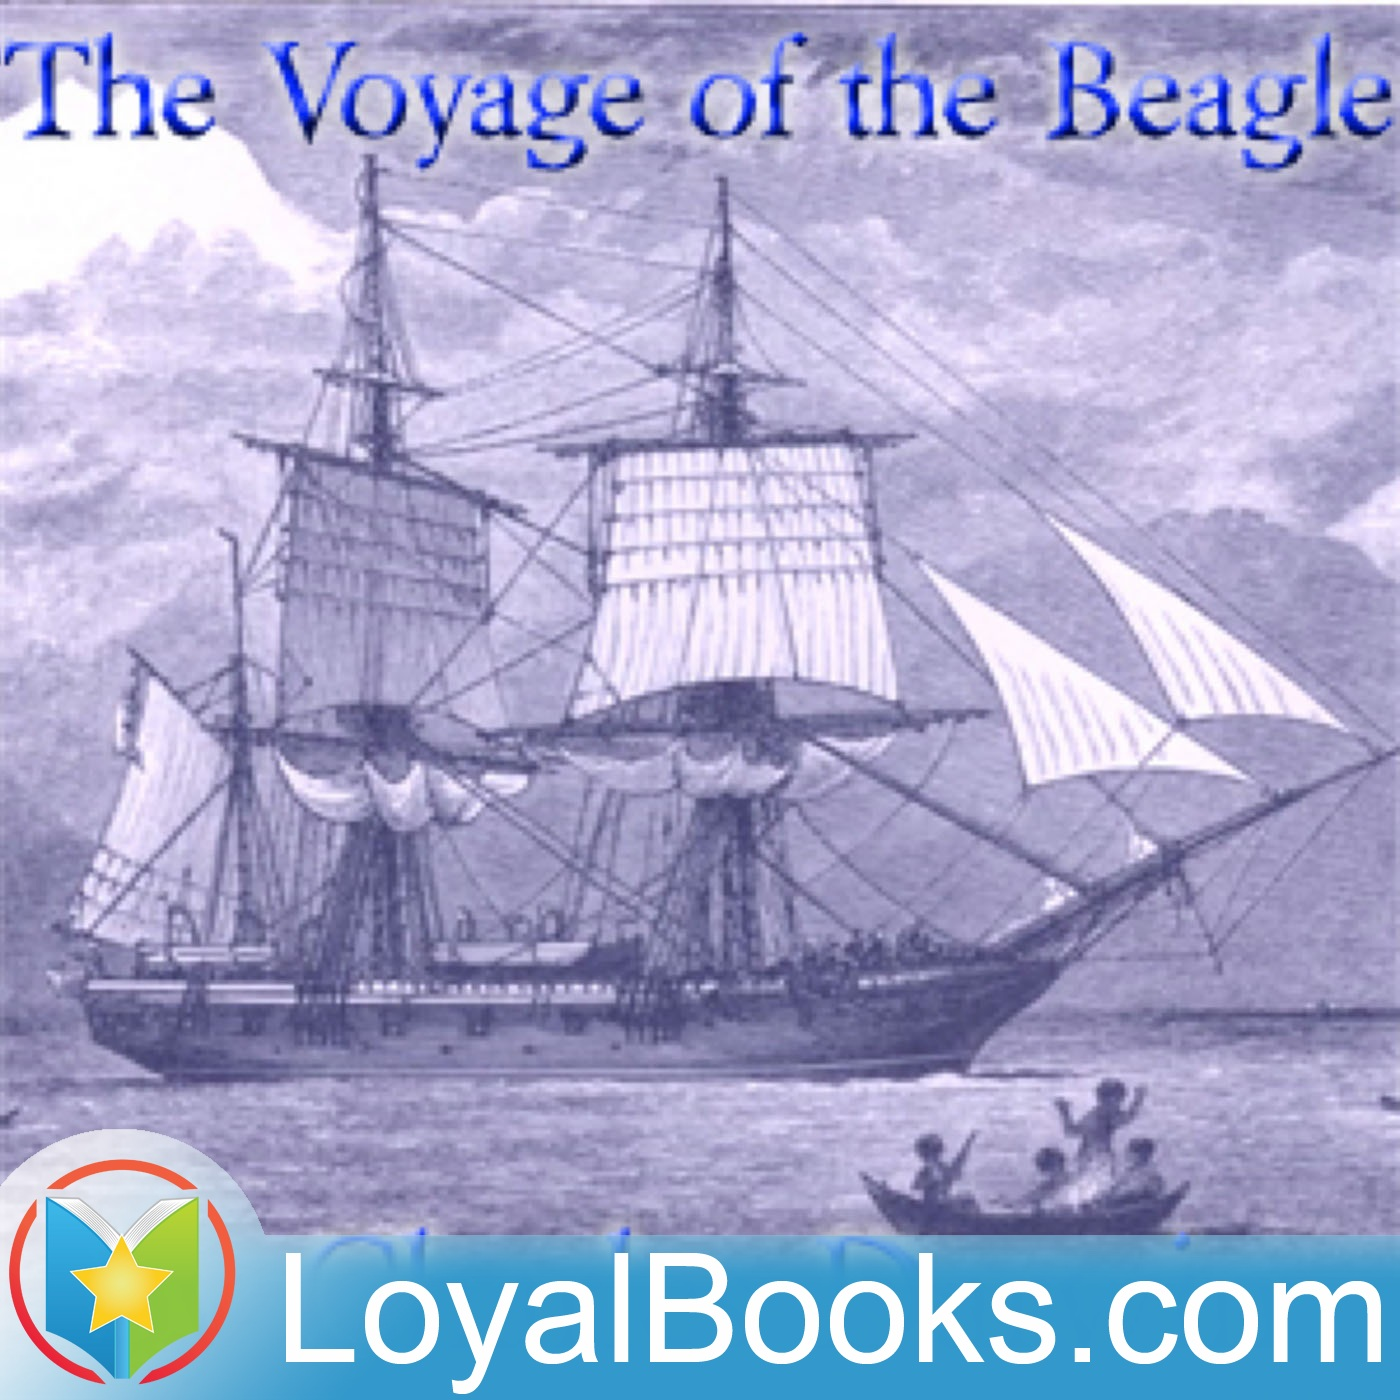 <![CDATA[The Voyage of the Beagle by Charles Darwin]]>